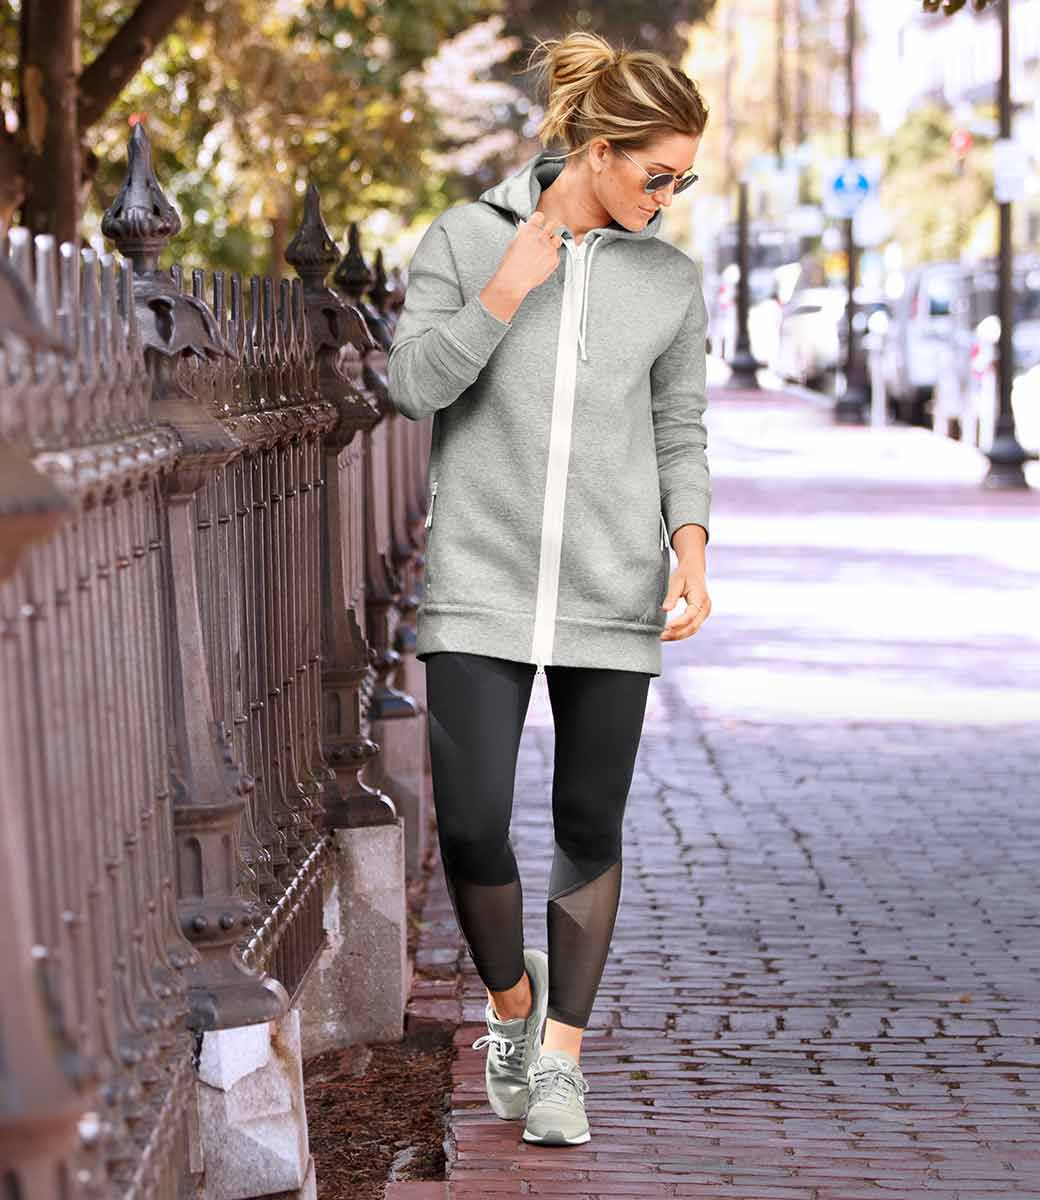 New Balance US Womens Street Scene Look 2,